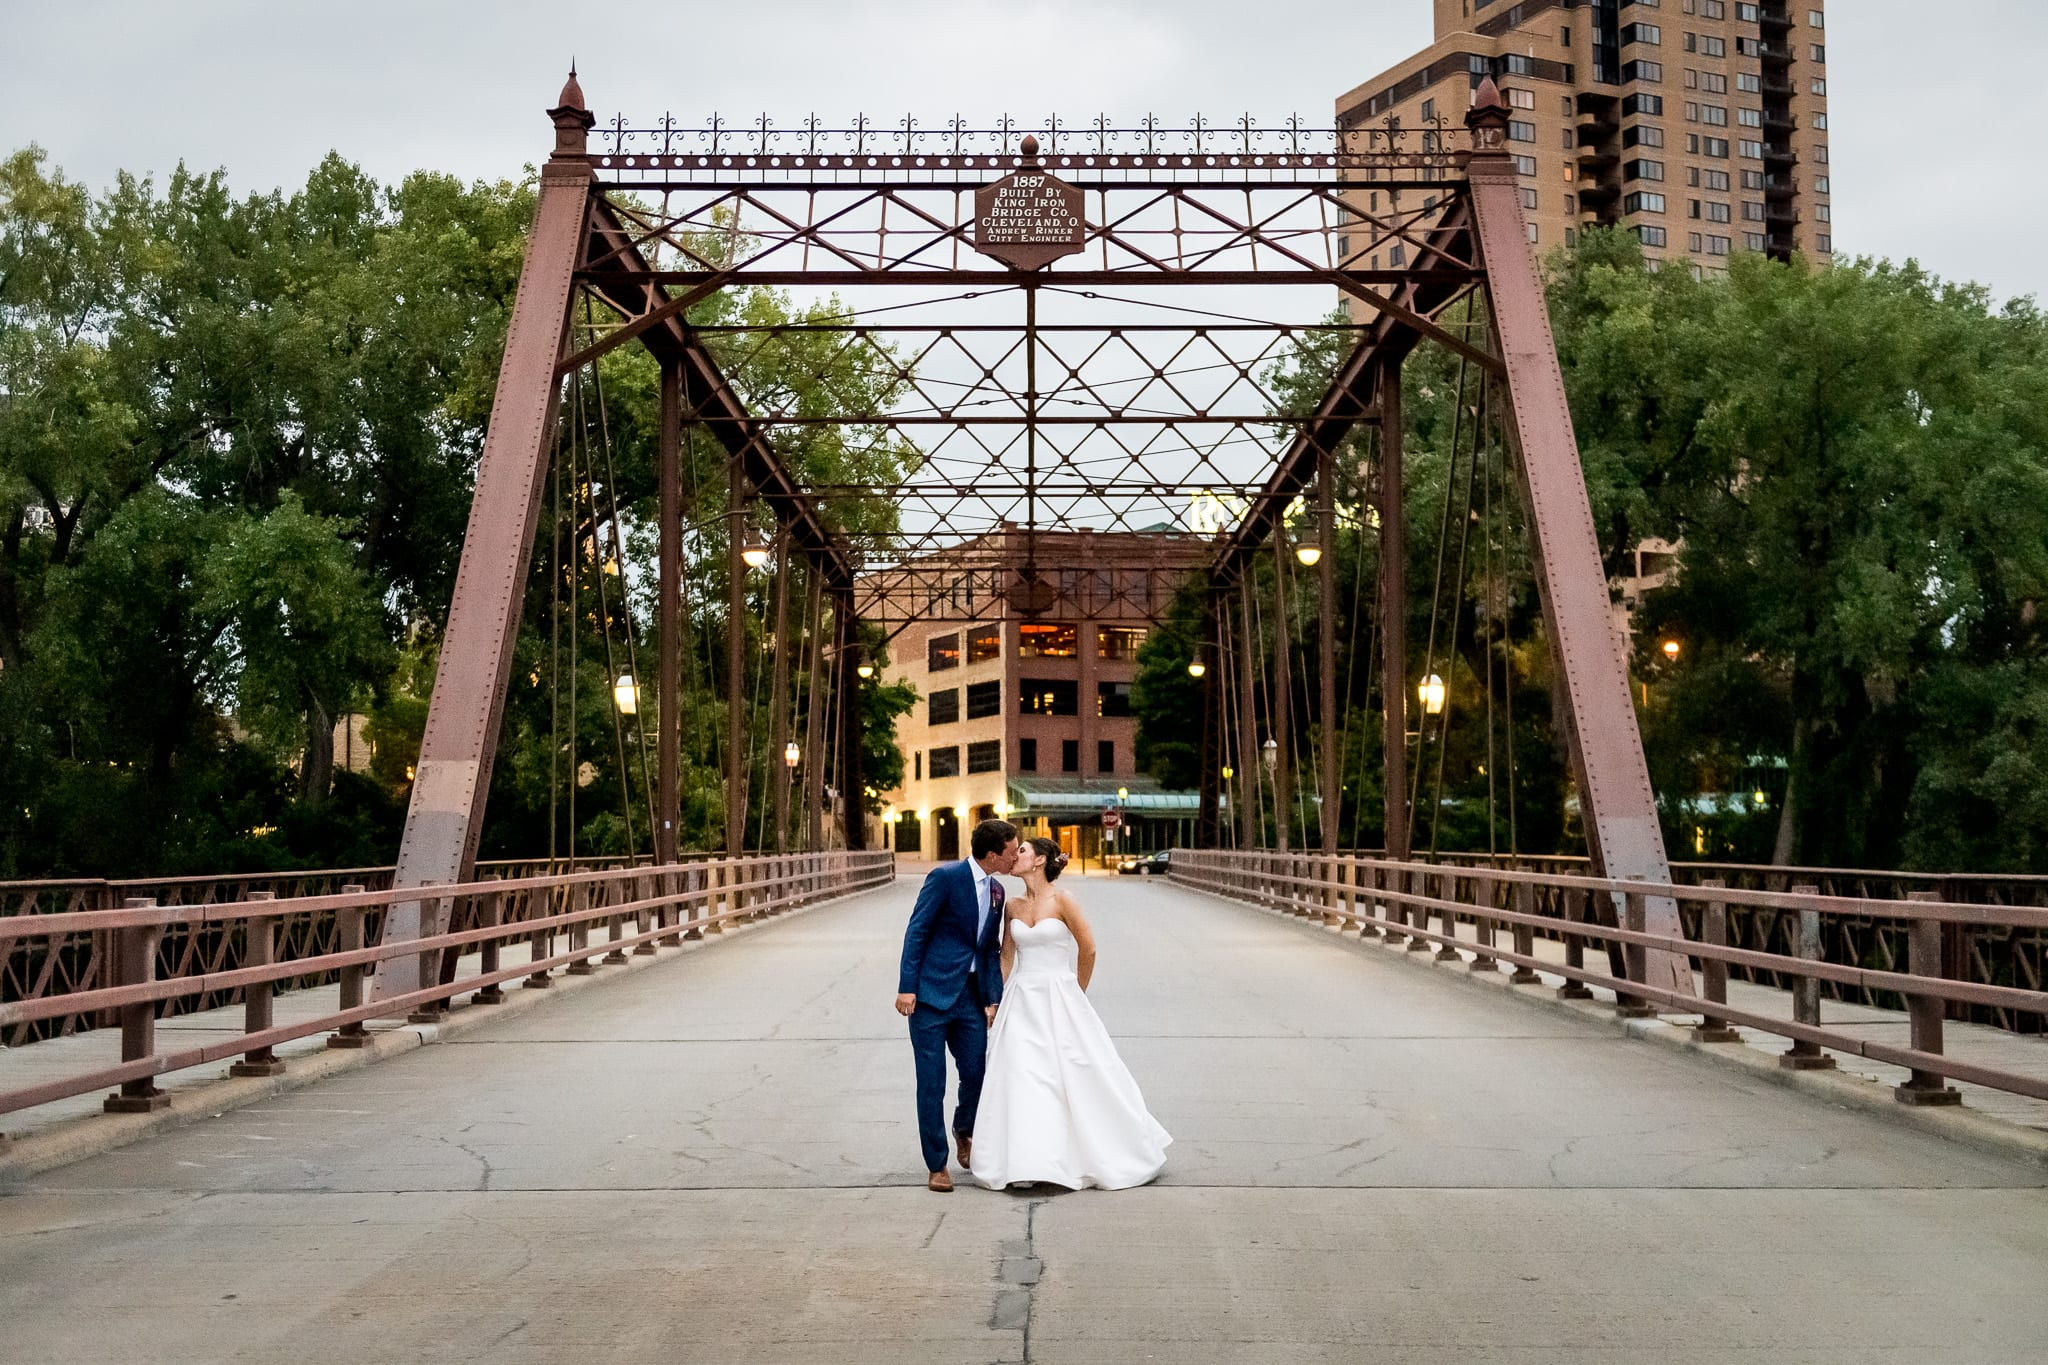 Bride and groom kissing in perfect symmetry on the Merriam Street Bridge in Minneapolis